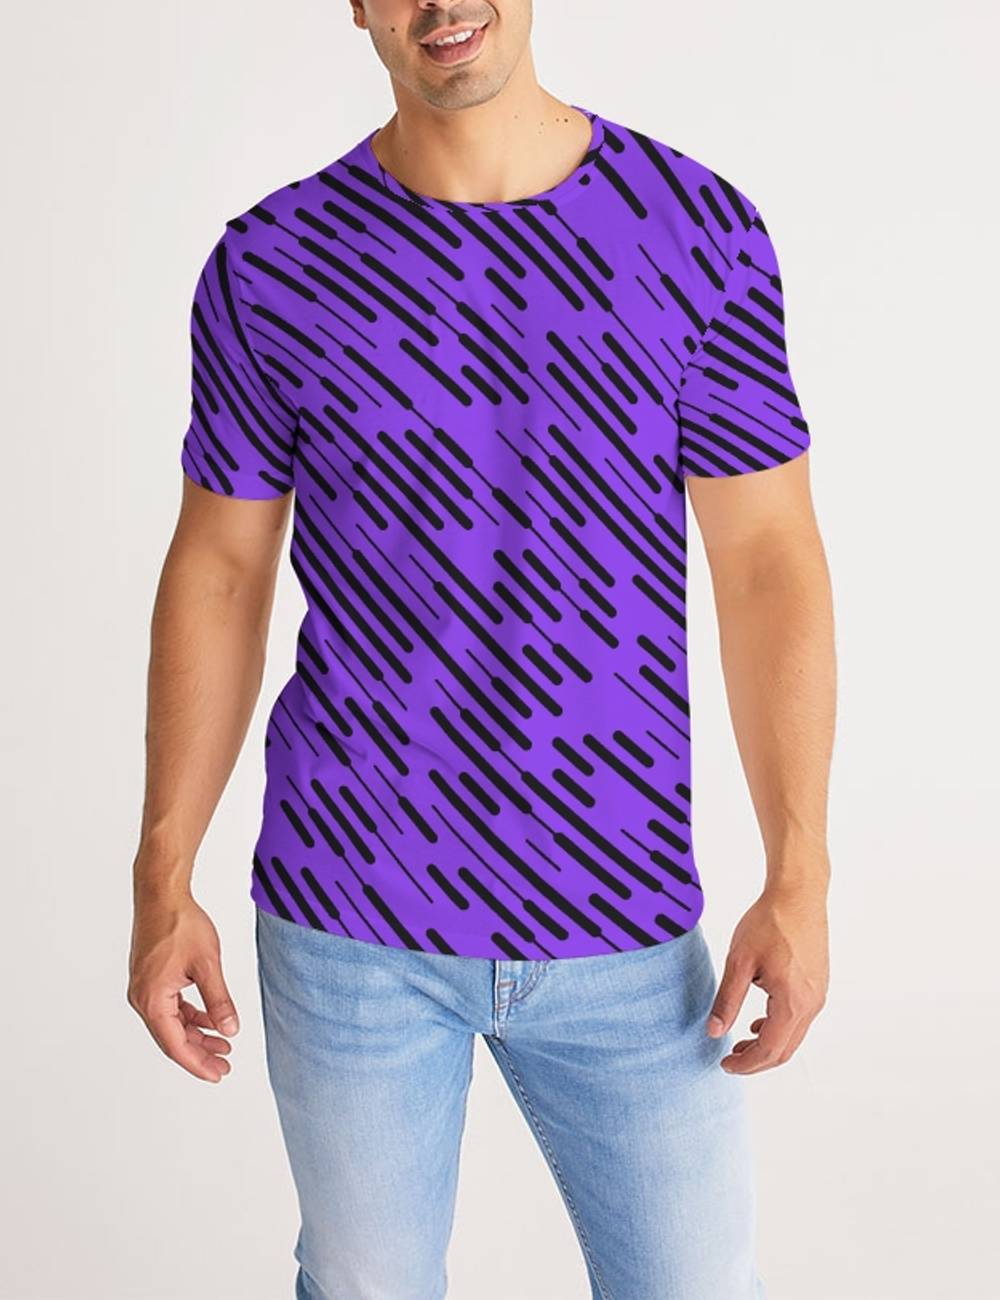 Irregular Grid Lines | Men's Sublimated T-Shirt